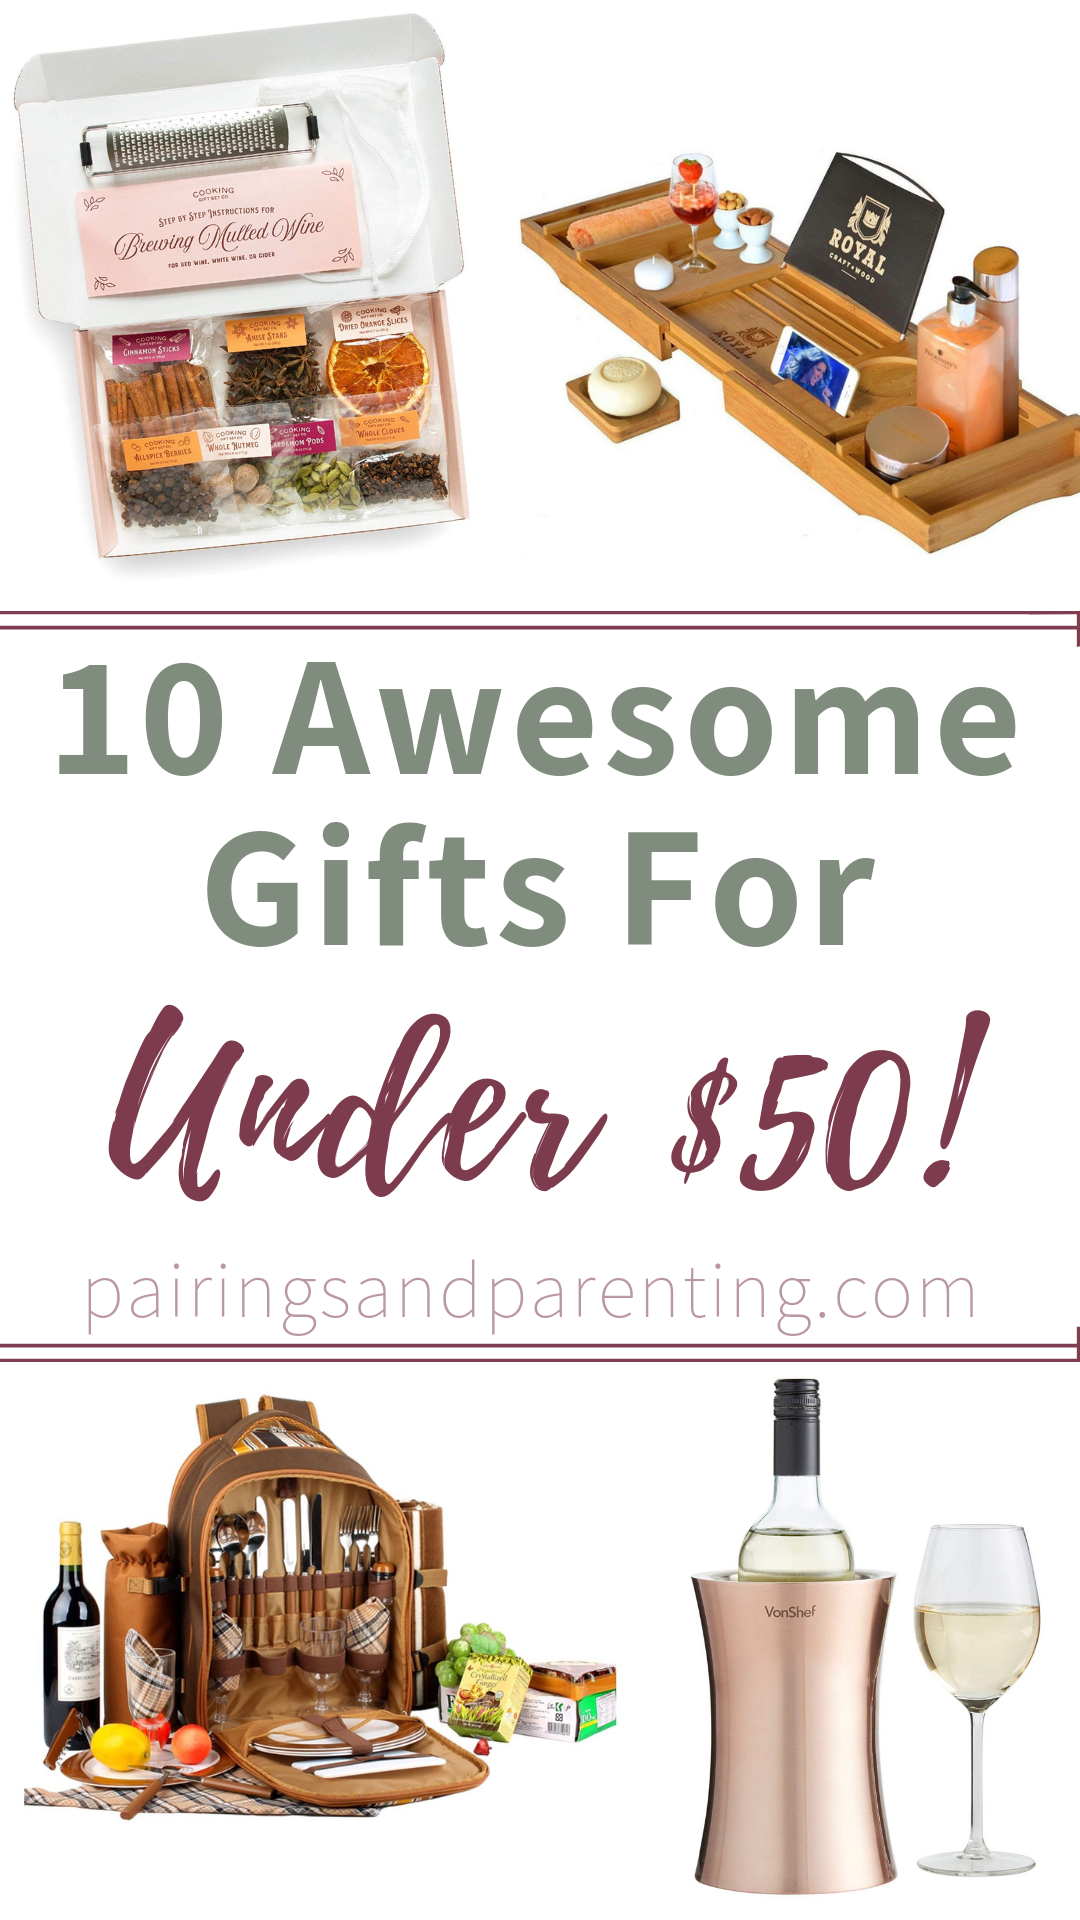 10 Awesome Gifts for Under $50